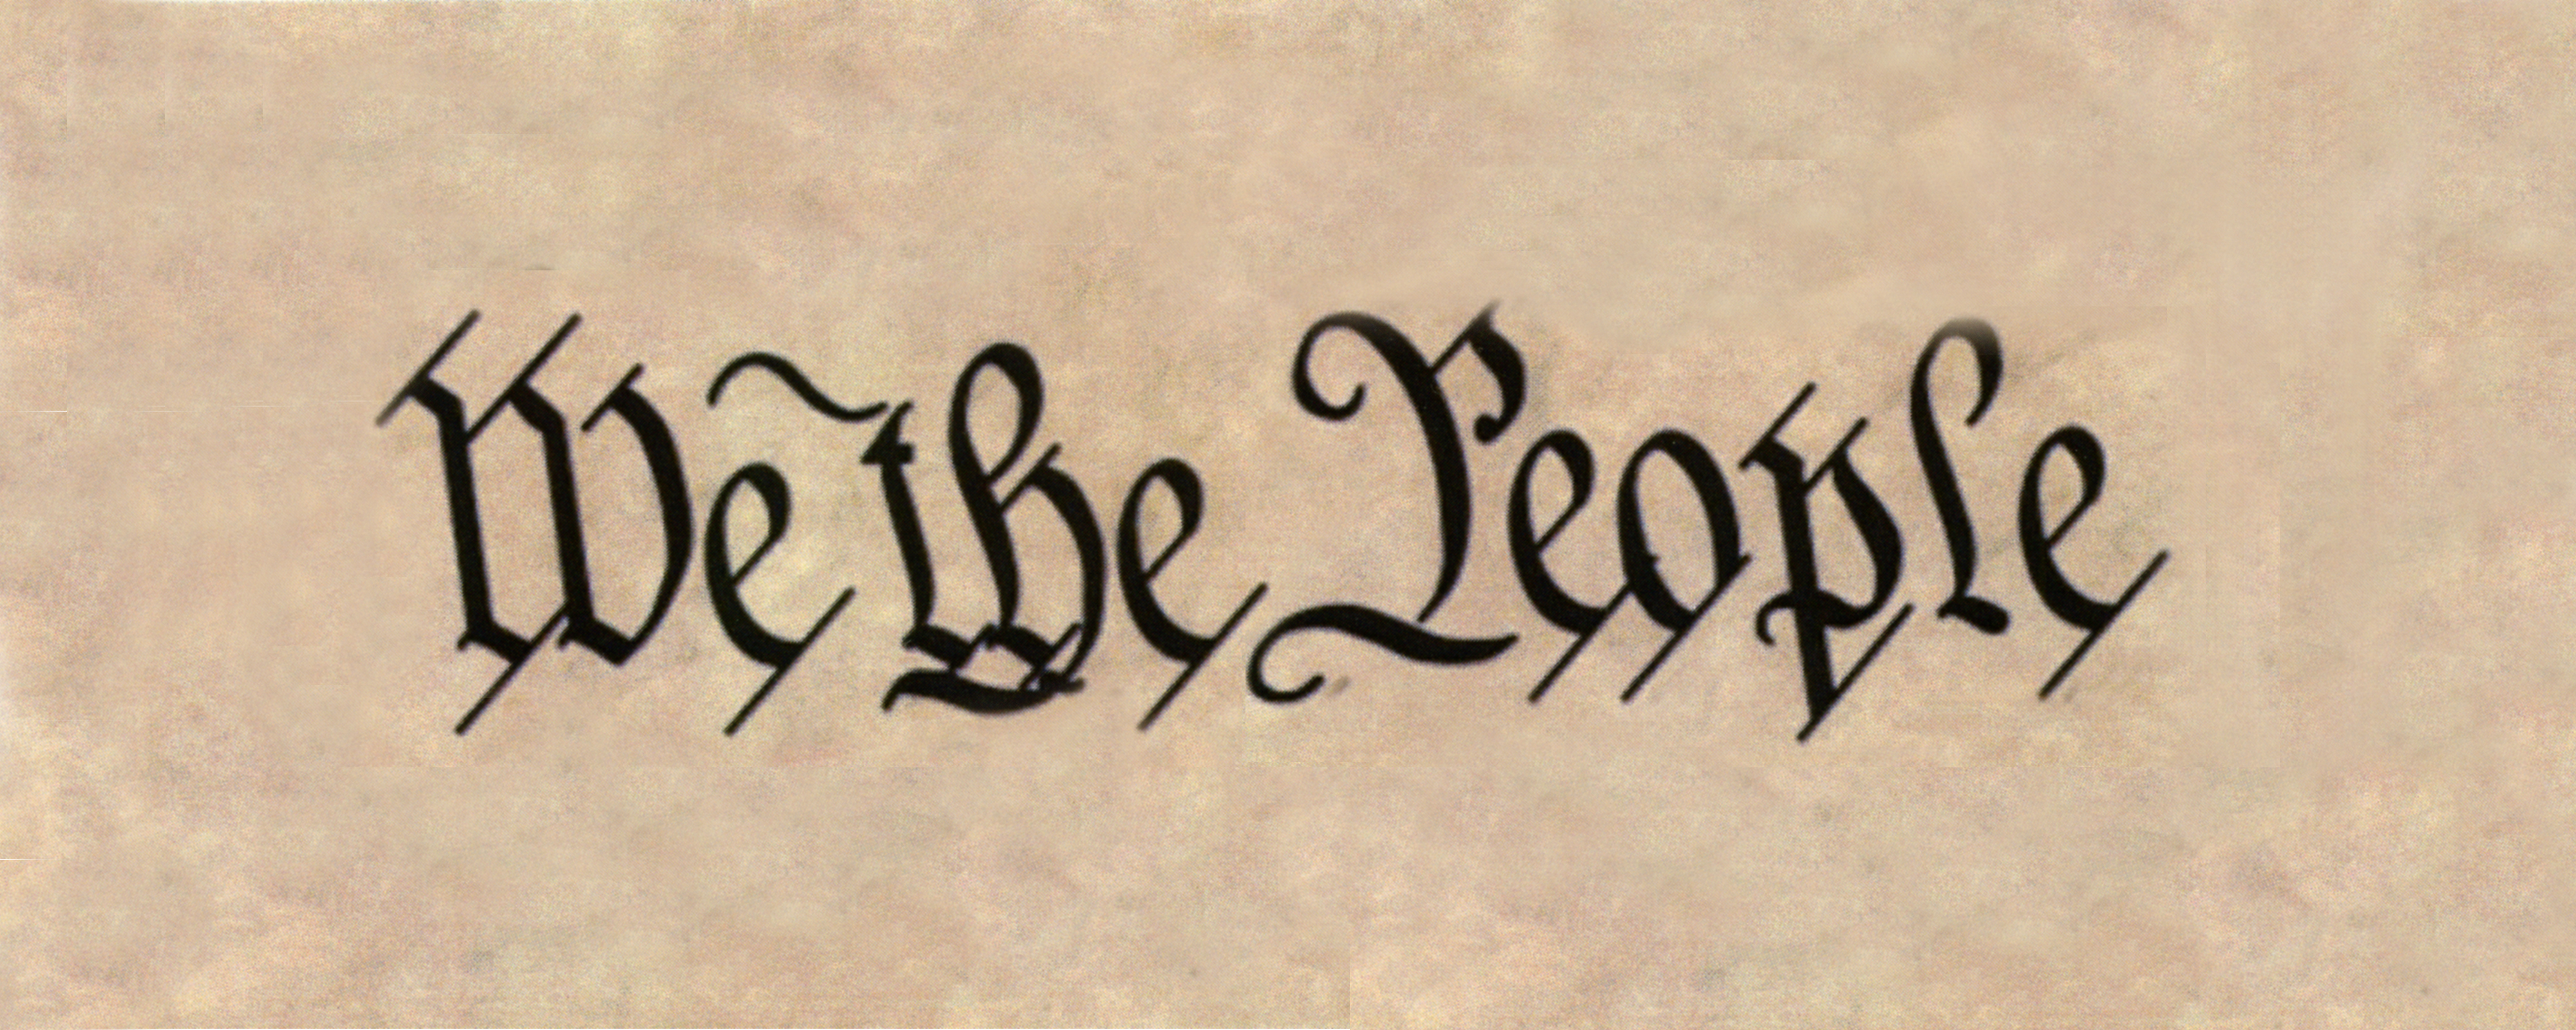 index of we the people